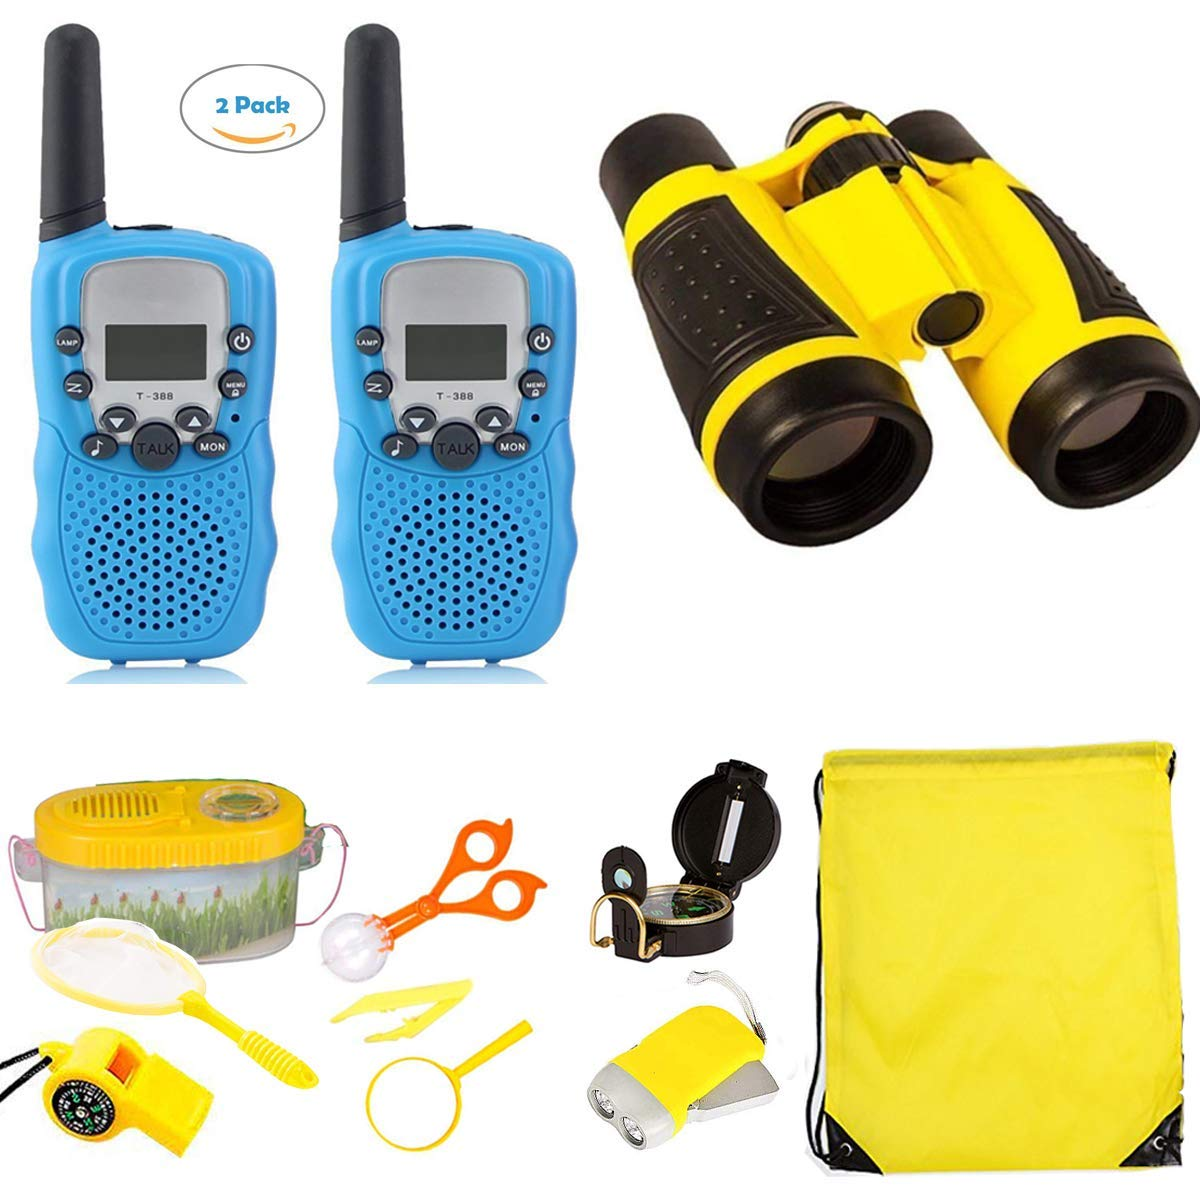 Woltechz Explorer Kit for Kids 2packs Walkie Talkies with 3KM Long Rang/ Binoculars for Kids/ Flashlight/ Compass/ Bug Catcher Adventure Kit for Kids Gift for Camping, Hiking, STEM Toys by Woltechz